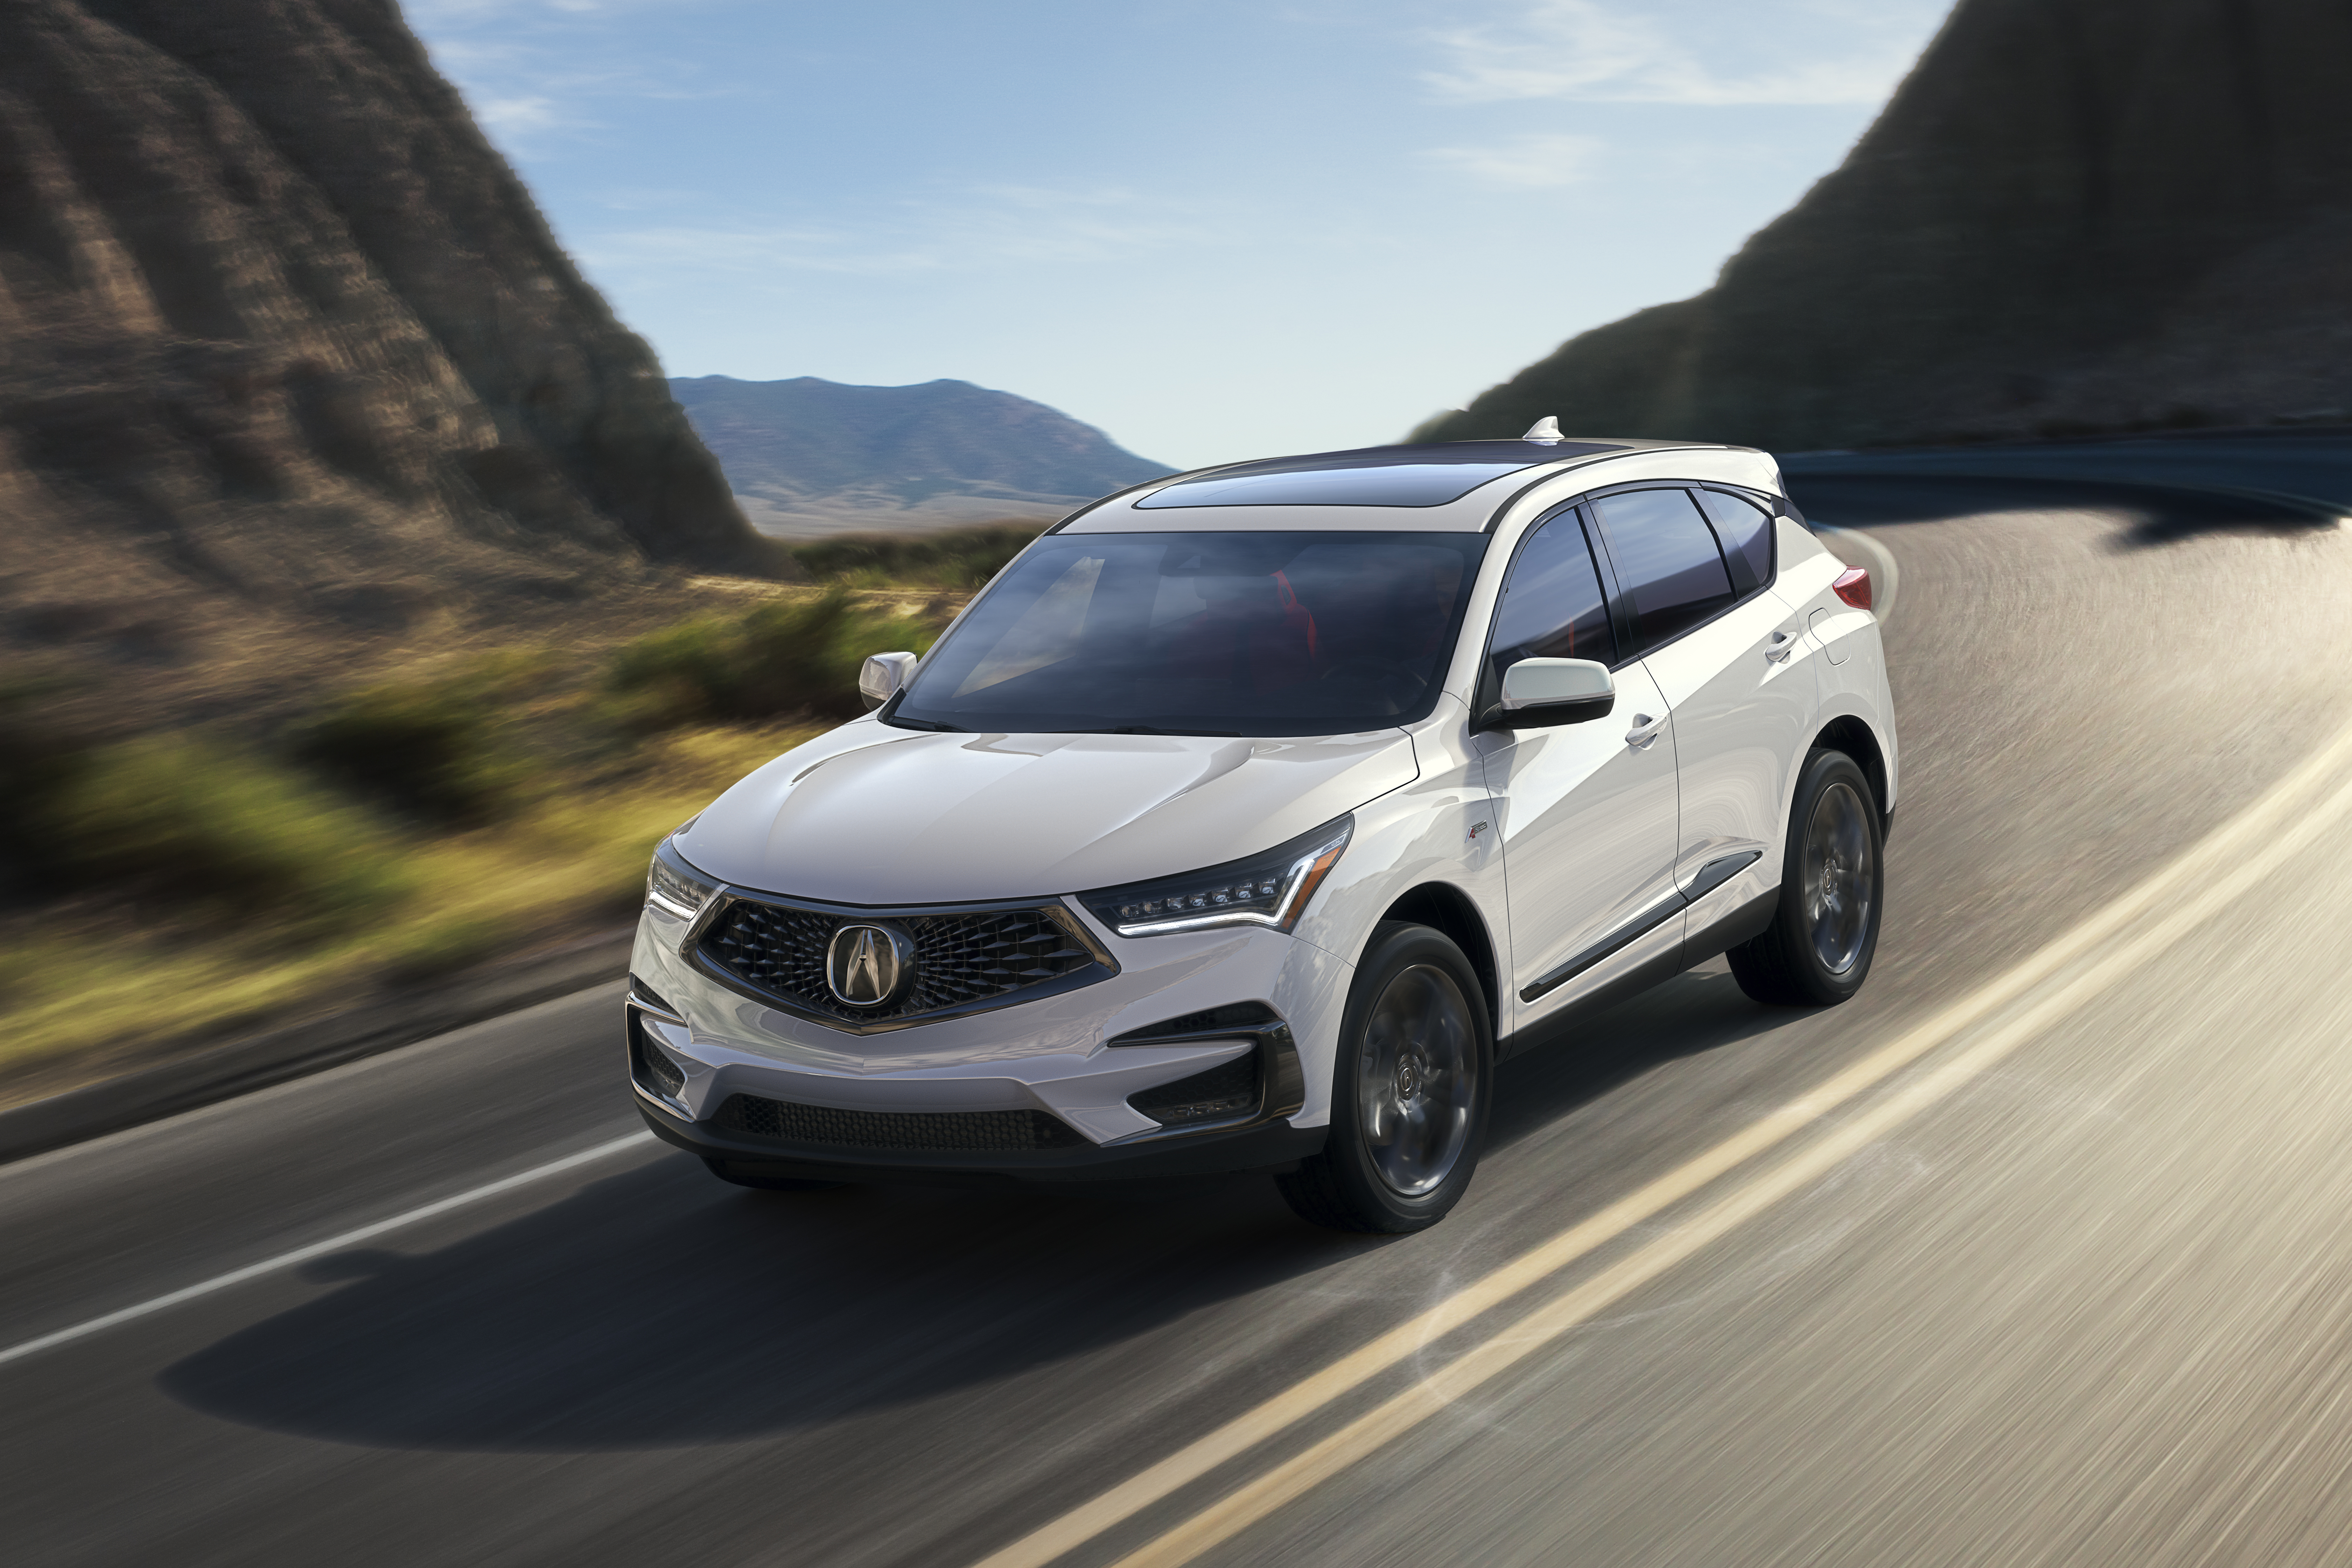 Design Comparison 2019 Infiniti Qx50 Vs 2019 Acura Rdx 2019 Acura